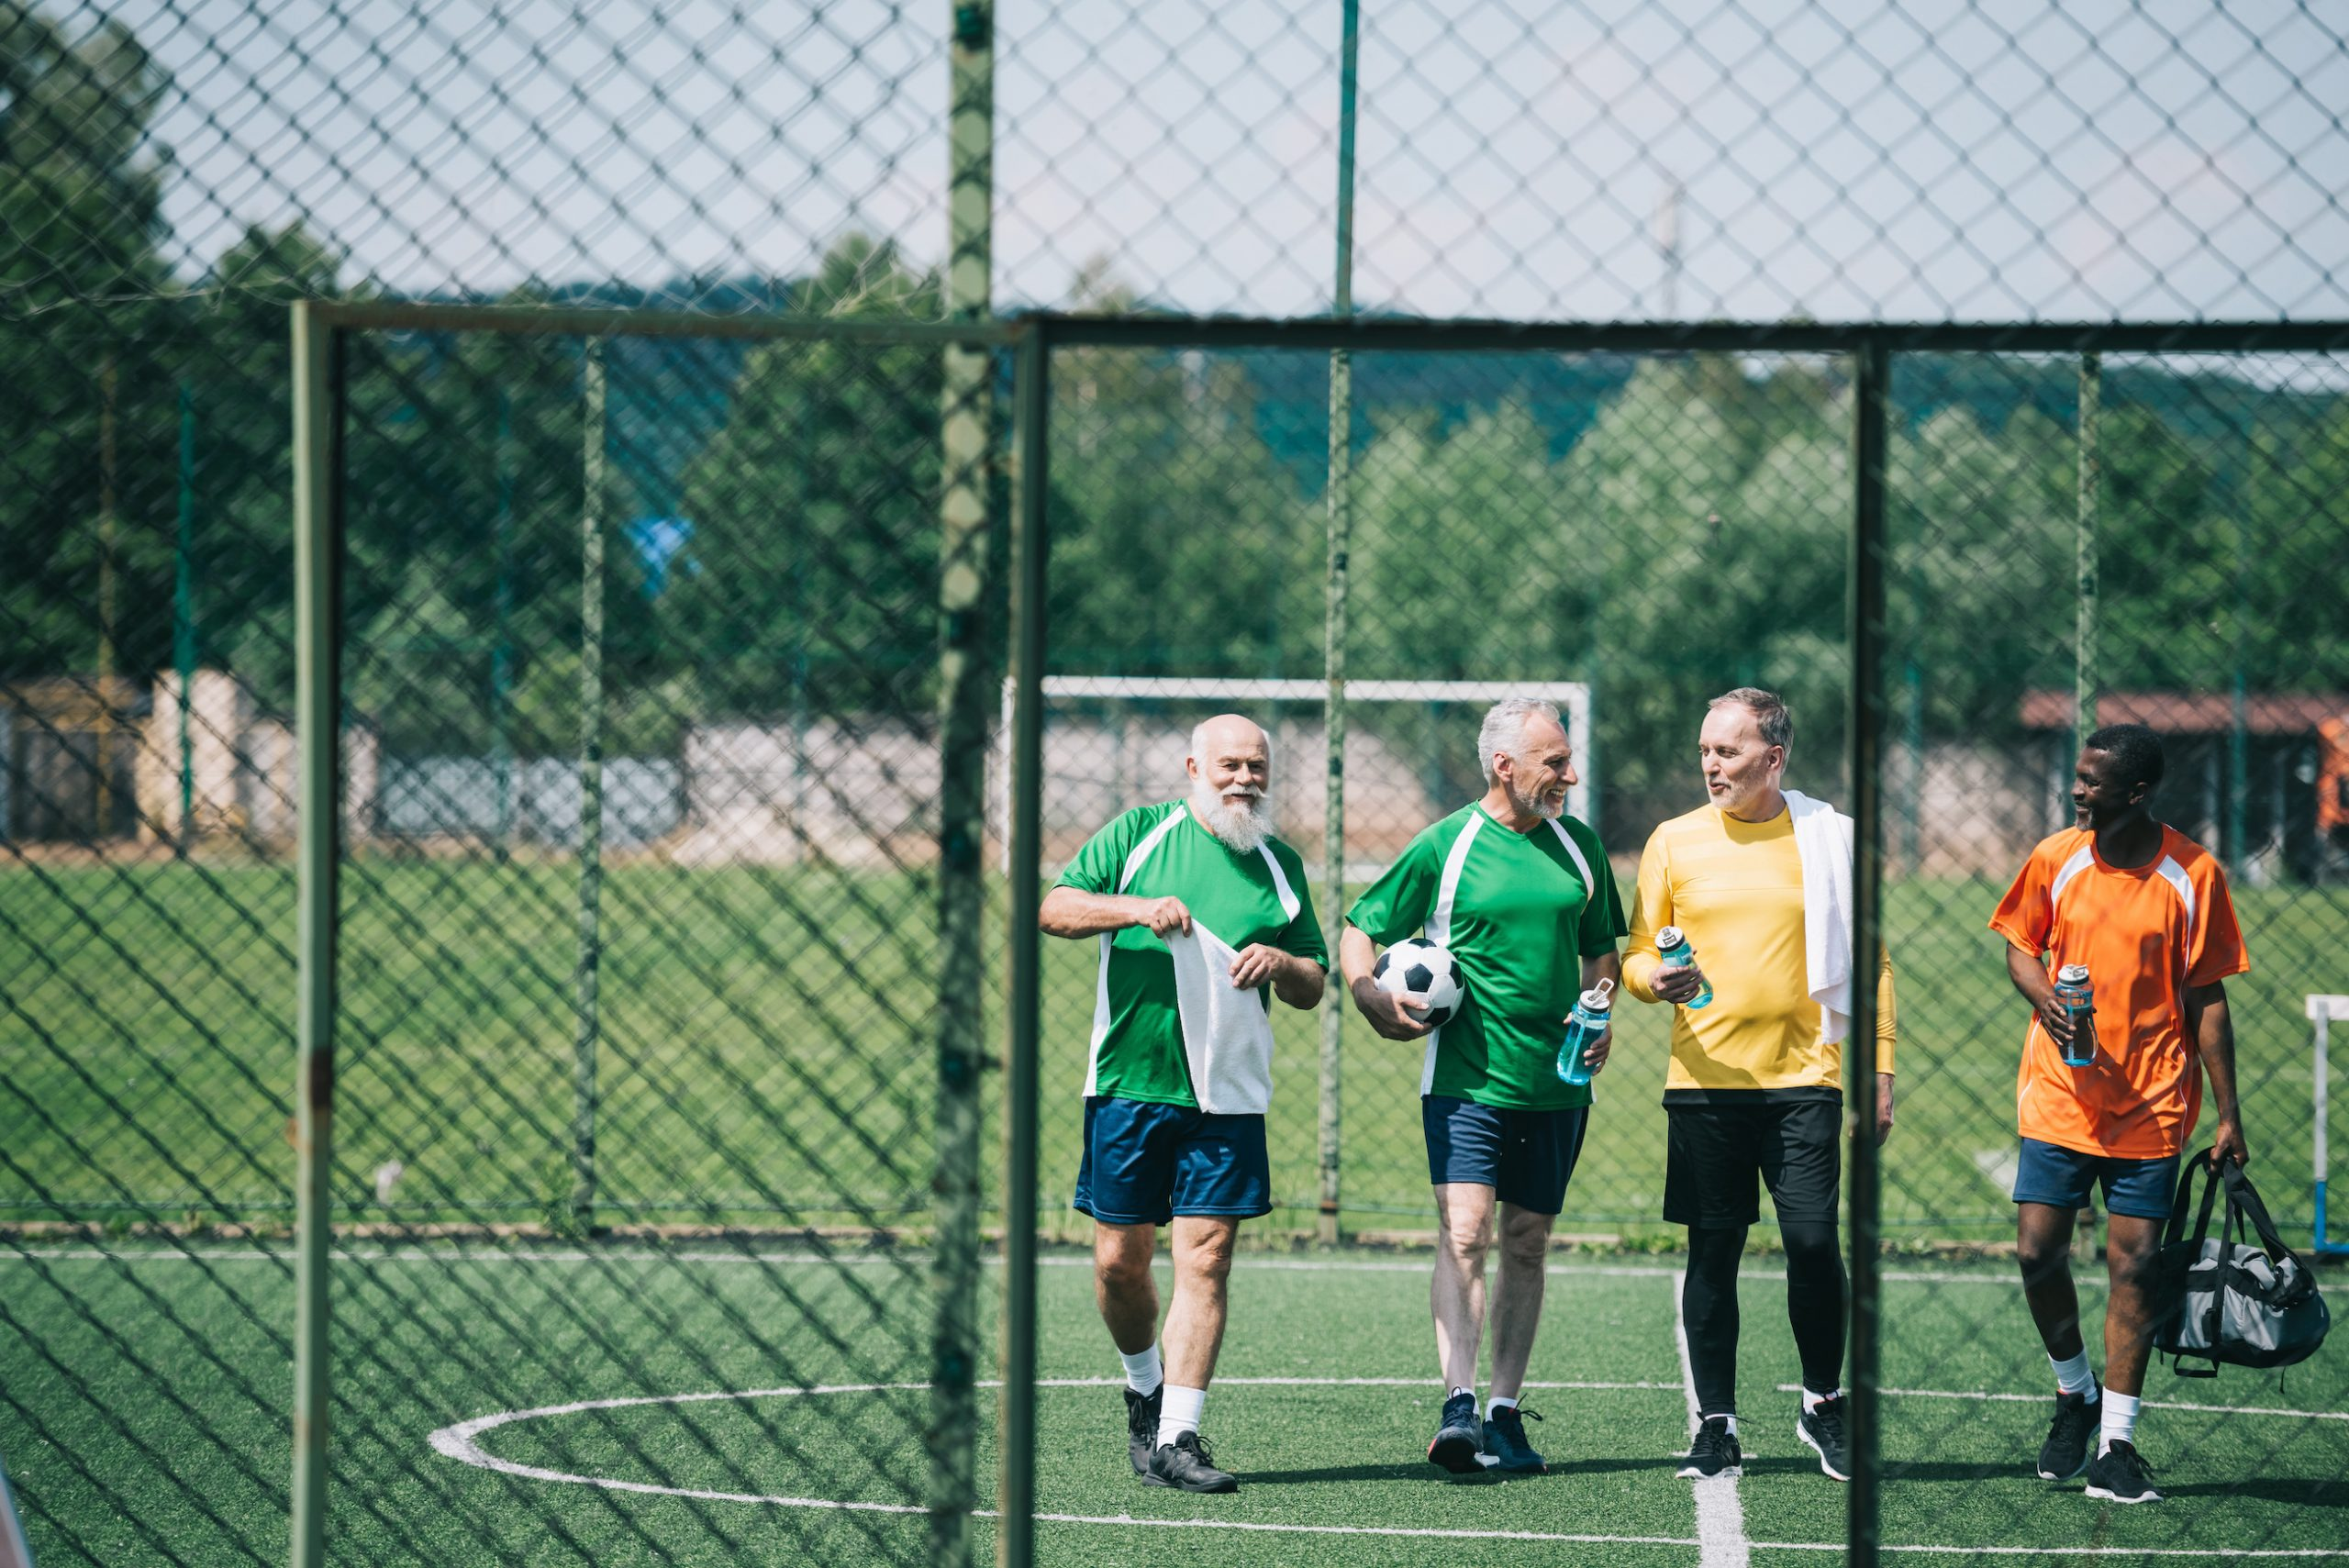 Opportunity for sport to help older people not being grasped